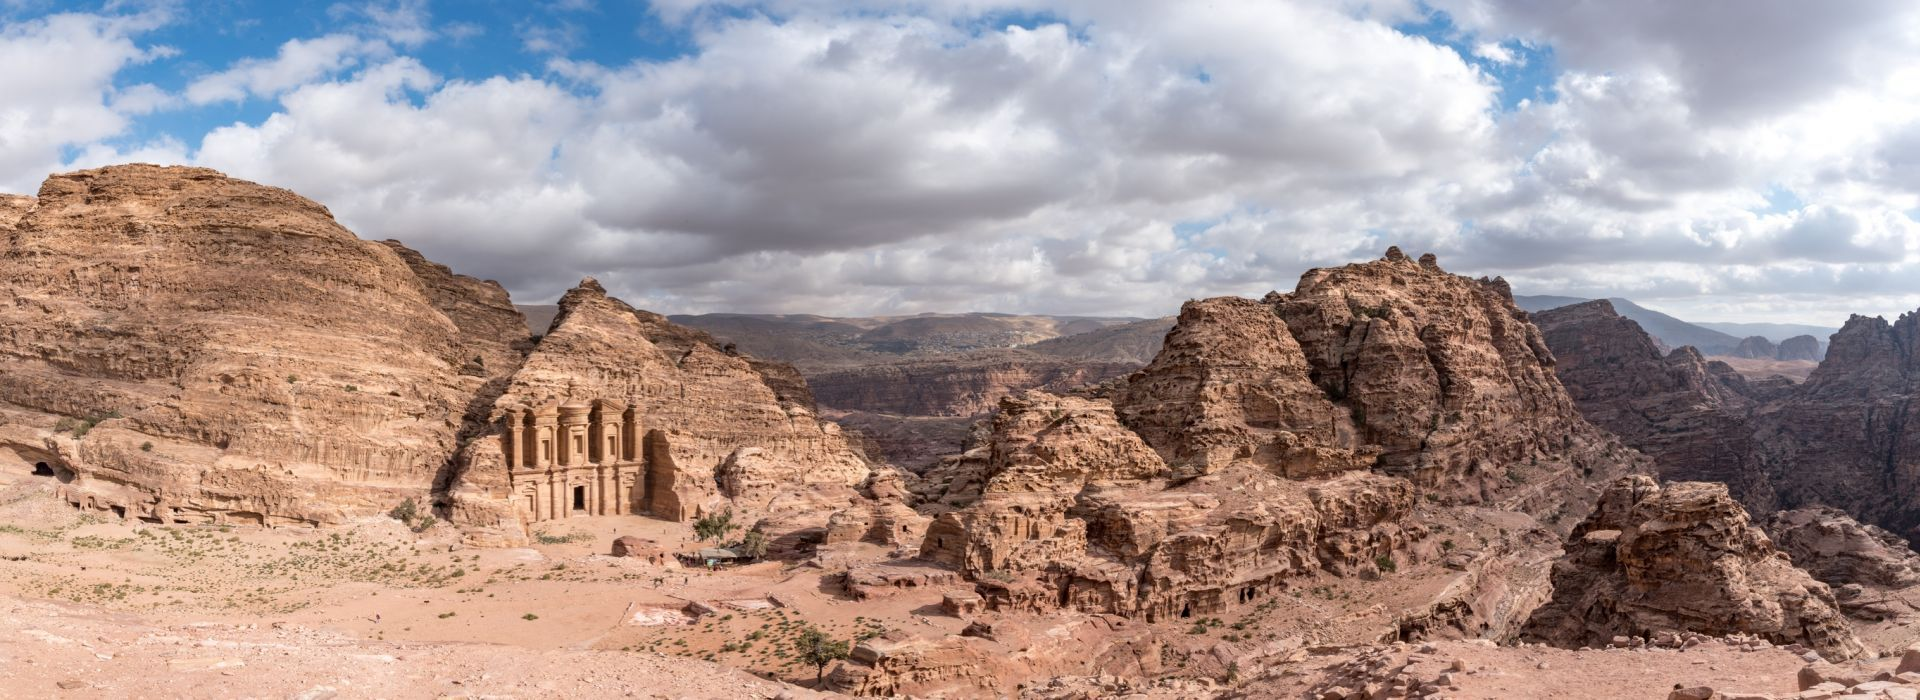 Expedition tours in Jordan